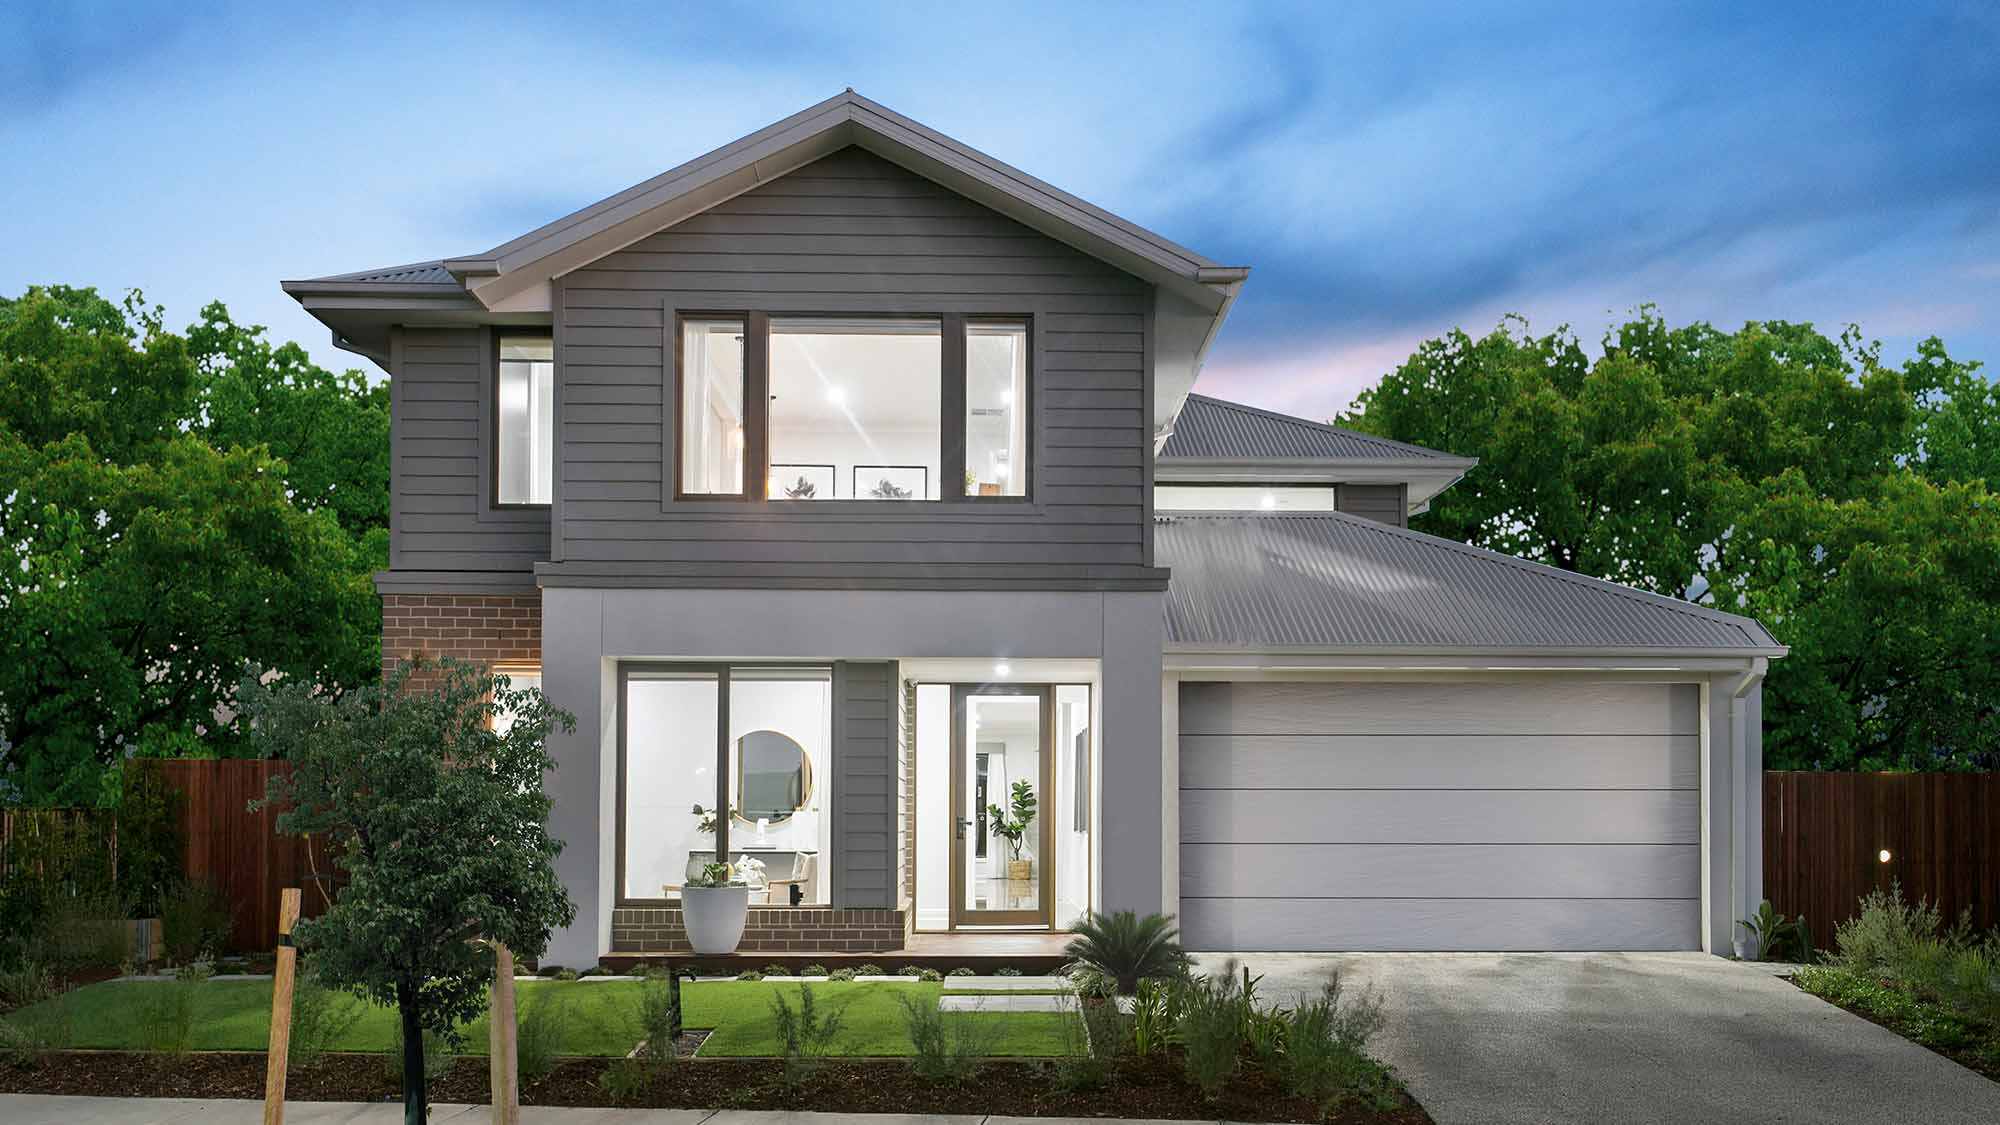 Houzify Home Design Ideas: Display Homes At Life, Point Cook